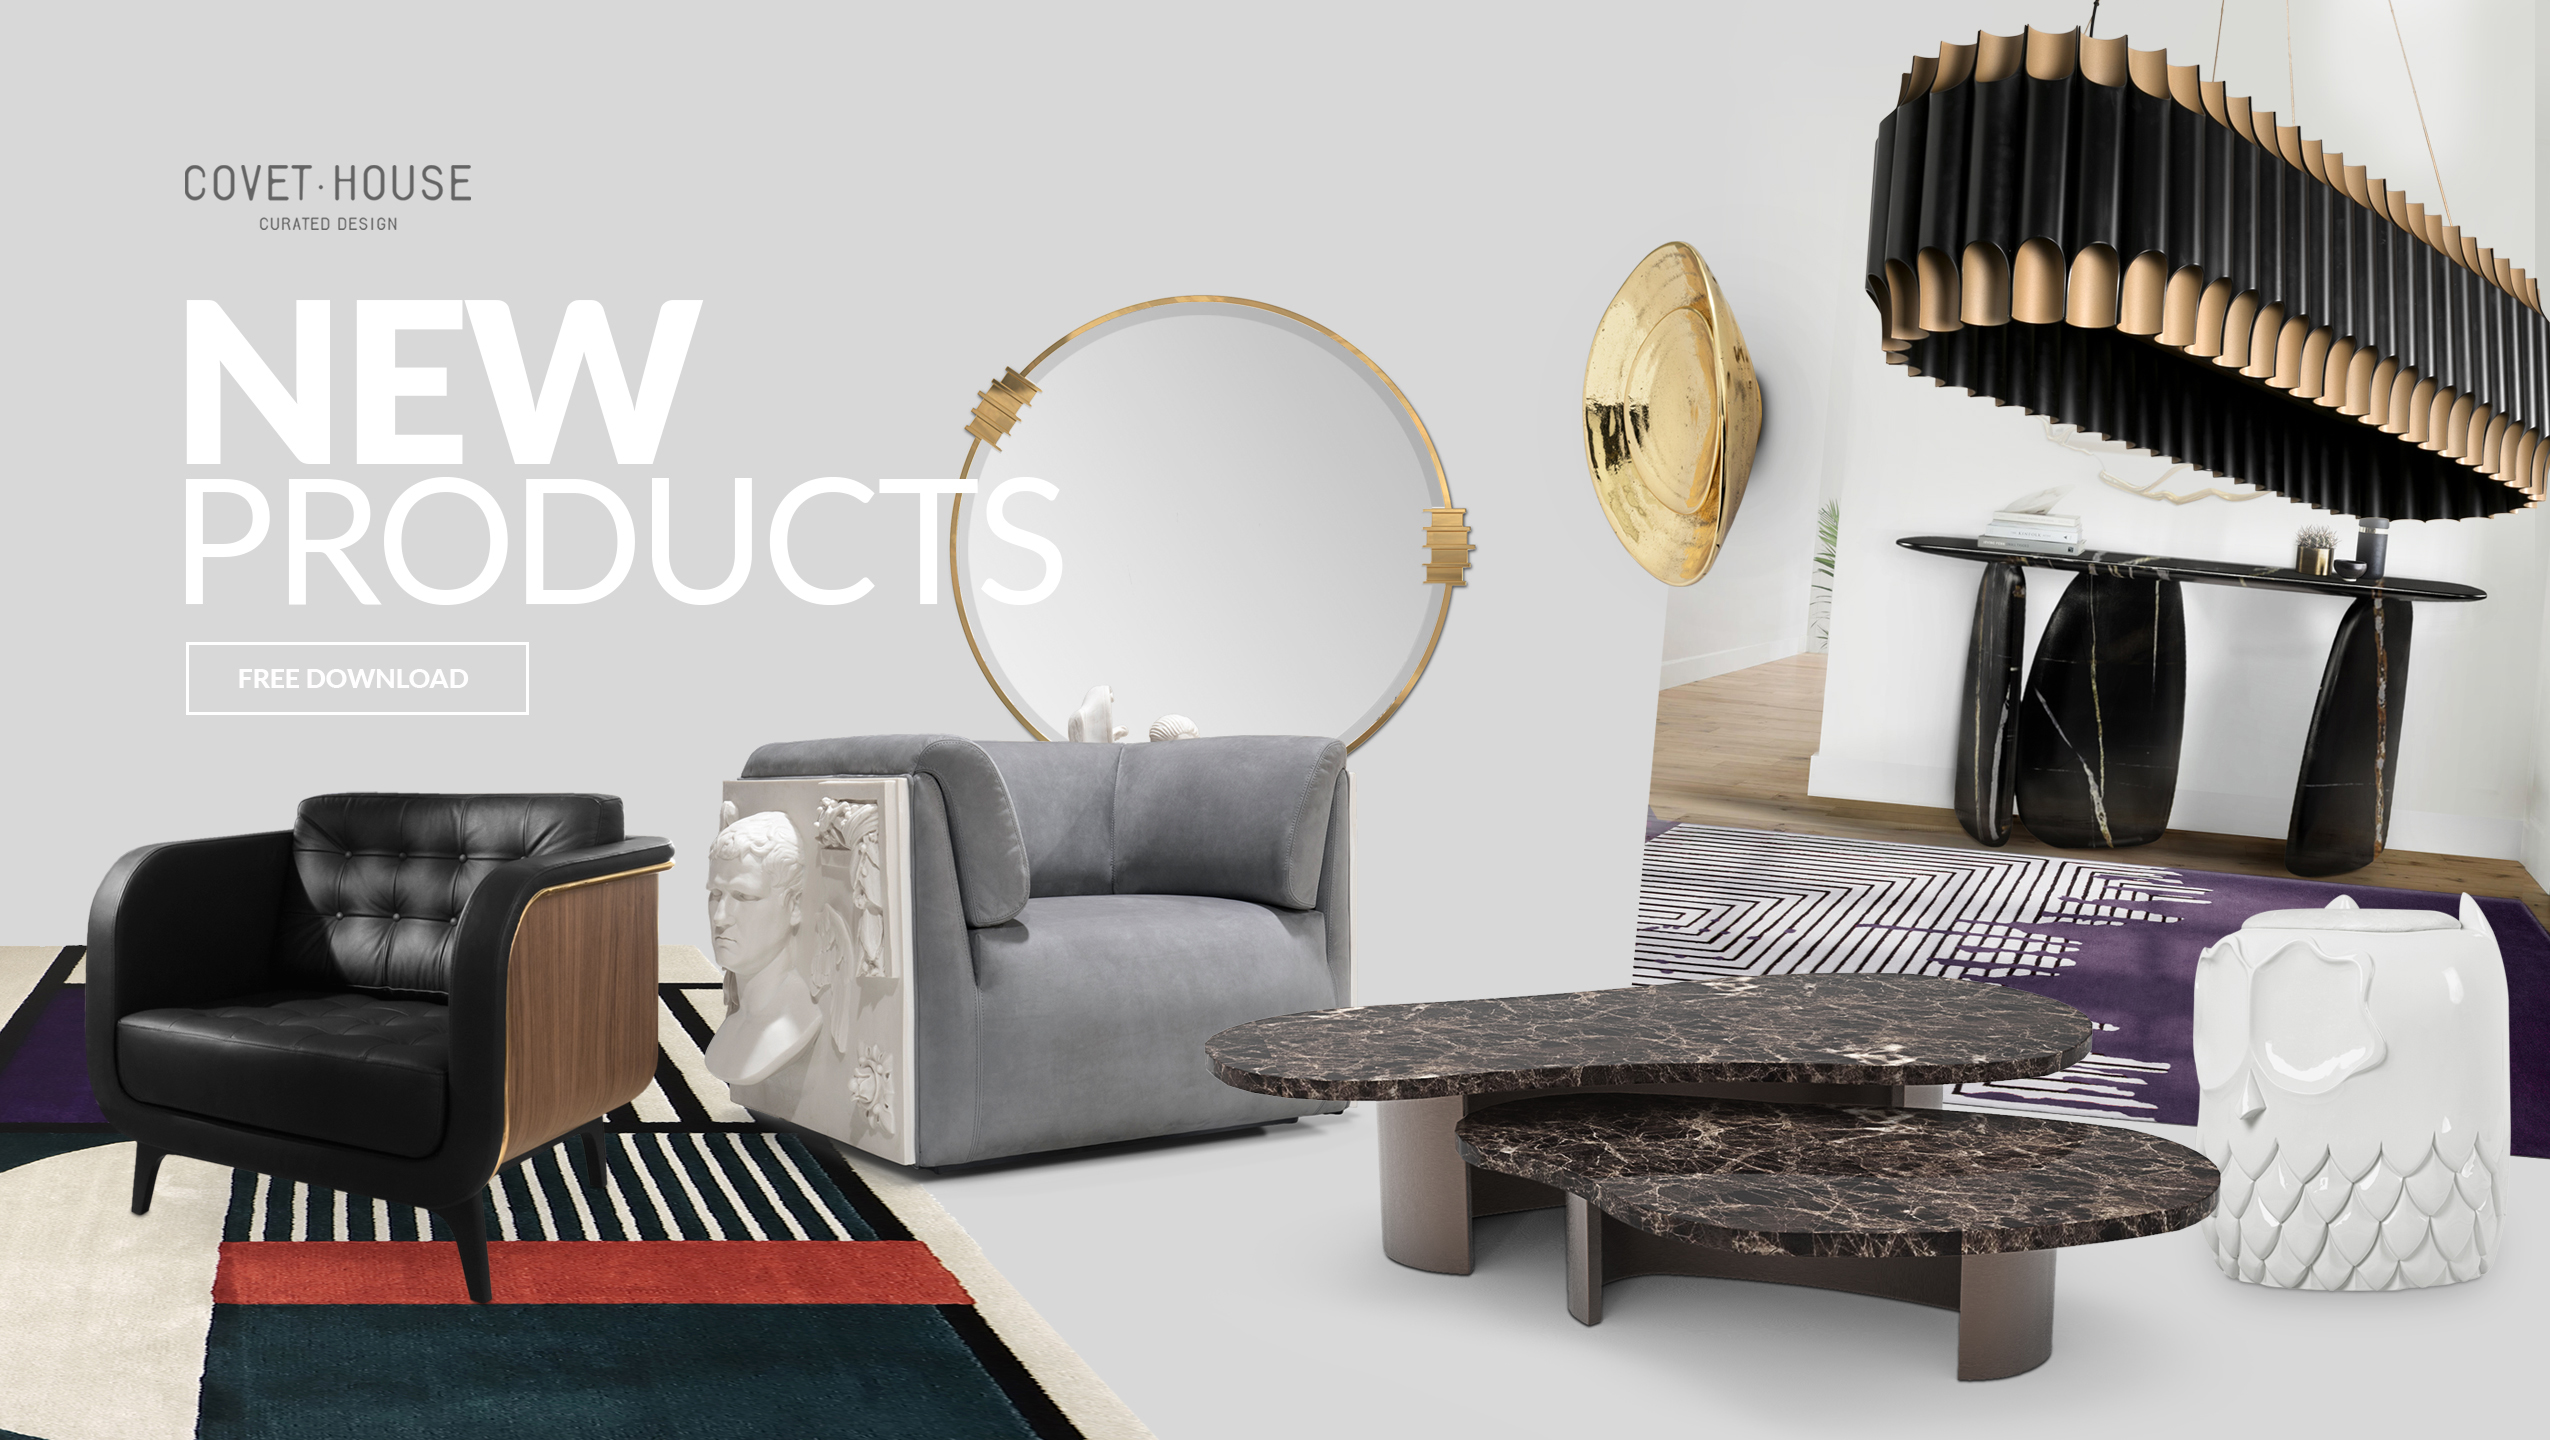 New Products 2020 maison et objet Recall Maison et Objet's Top Products With This Inspiring Design Ebook! newproducts cta1